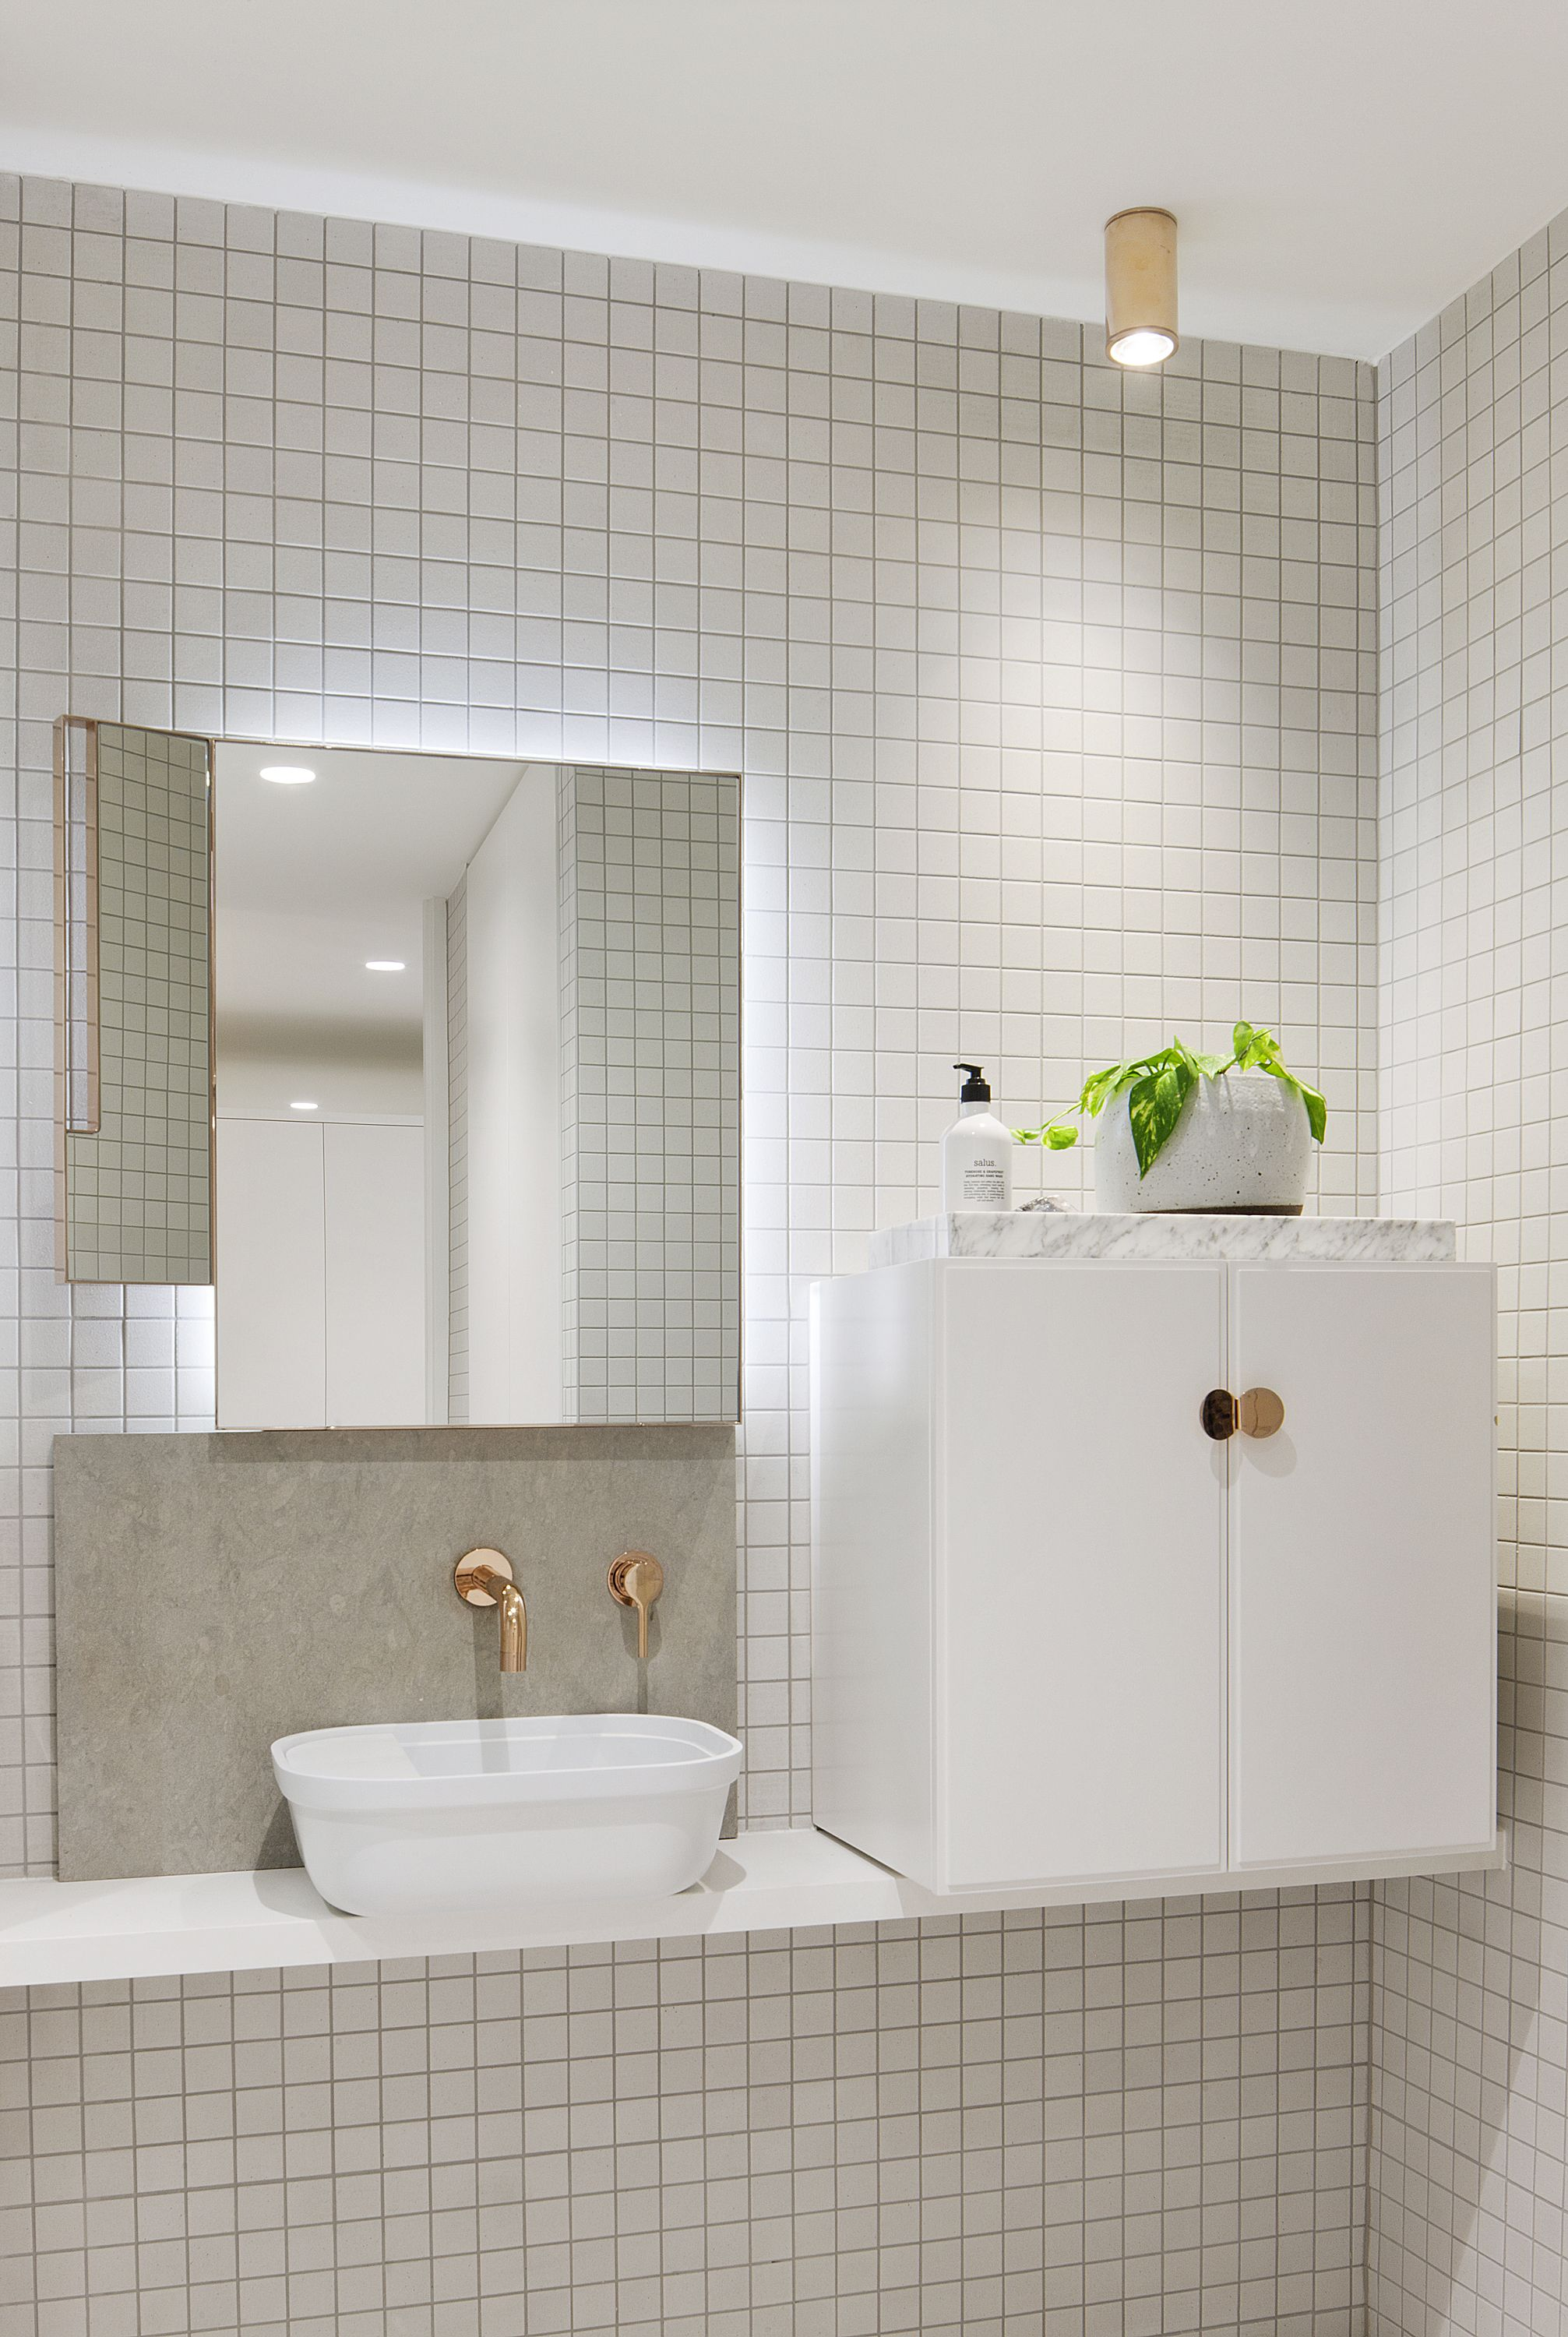 hecker guthrie are interior designers and furniture designers located in melbourne australia specializing in residential retail hotel accommodation and - Multi Bathroom Design